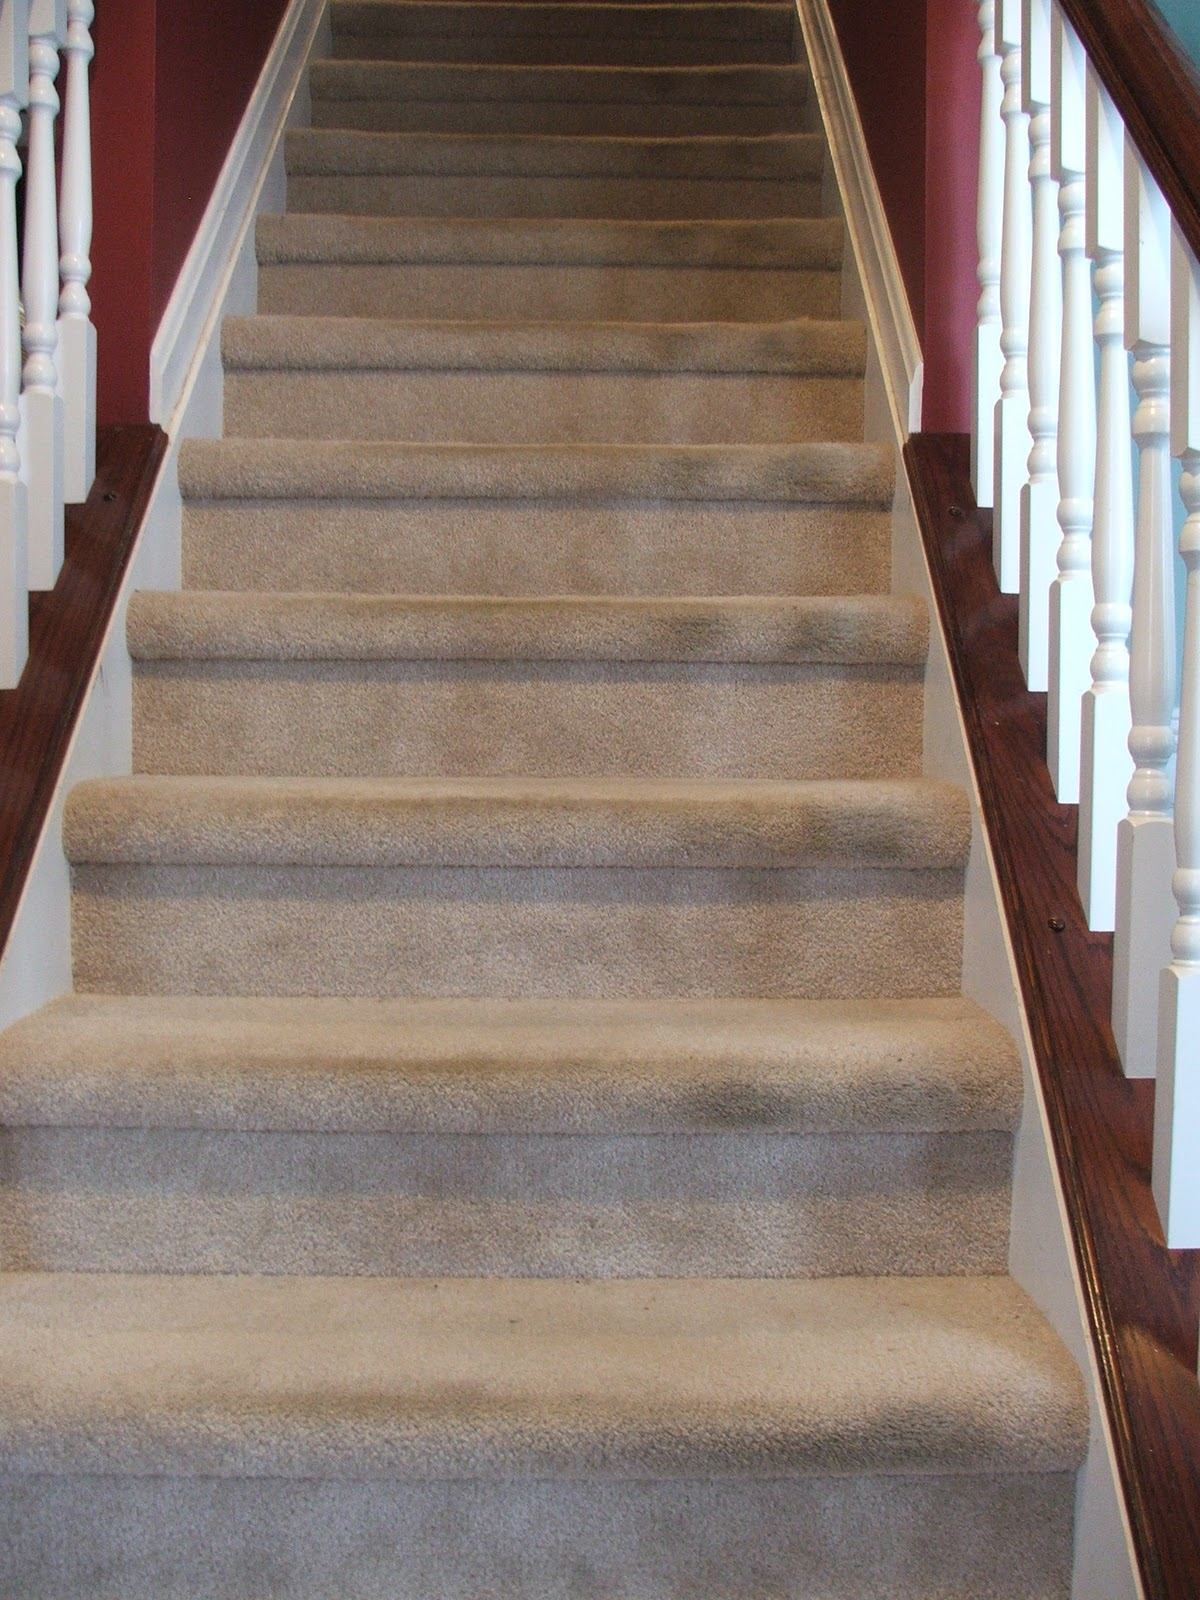 Remodelaholic Under 100 Carpeted Stair To Wooden | Buy Carpet For Stairs